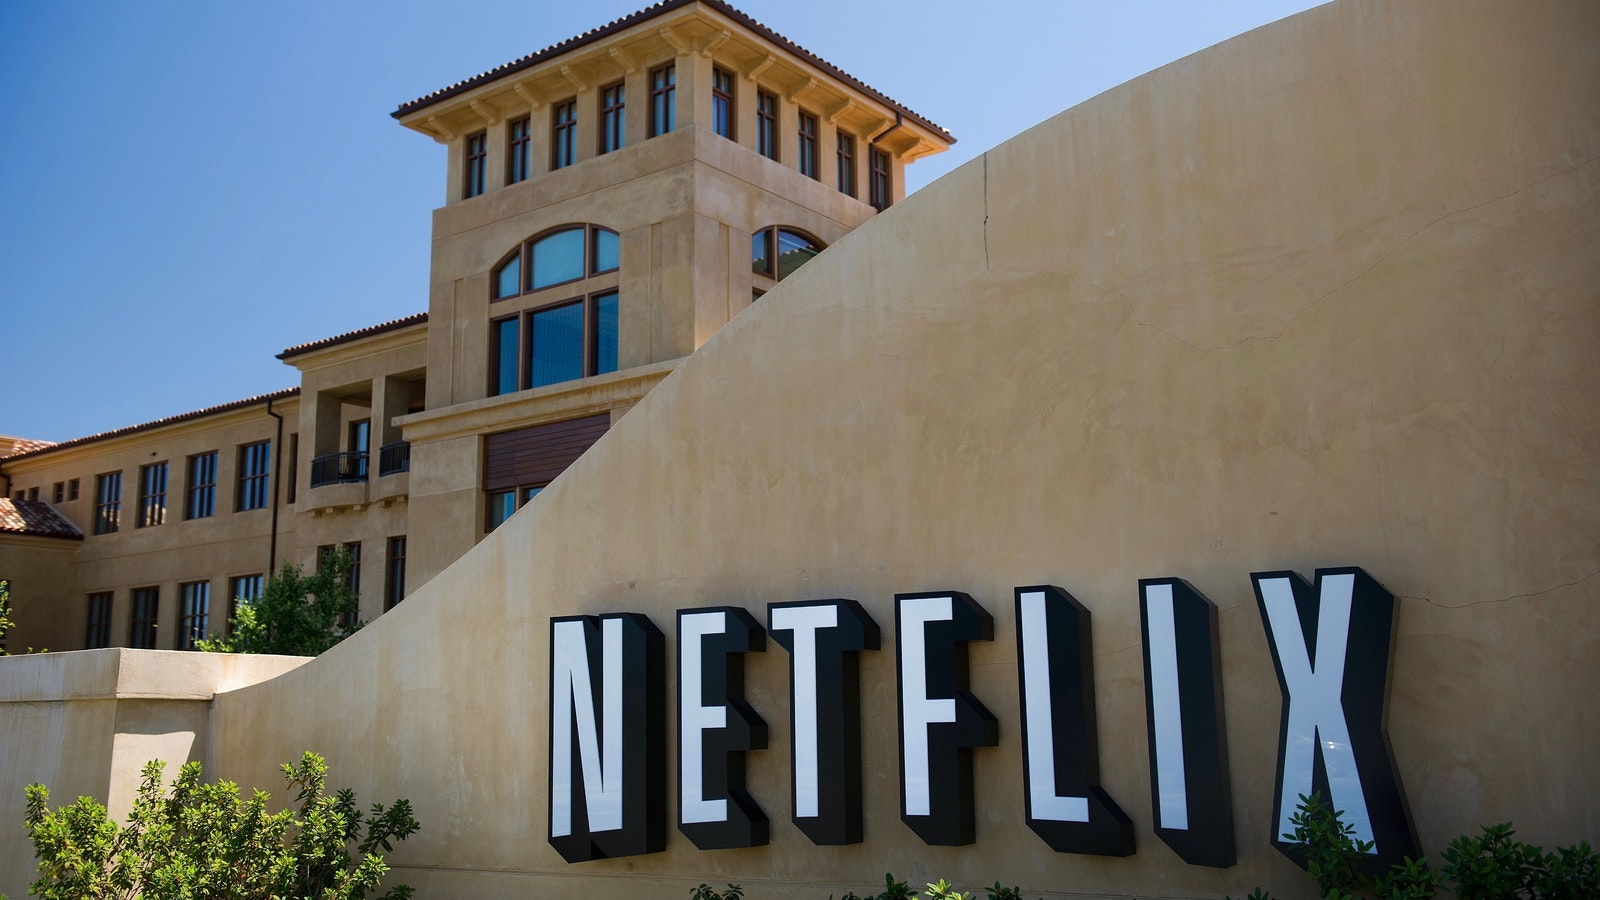 Netflix's headquarters in Los Gatos, Calif. Photo by Bloomberg.